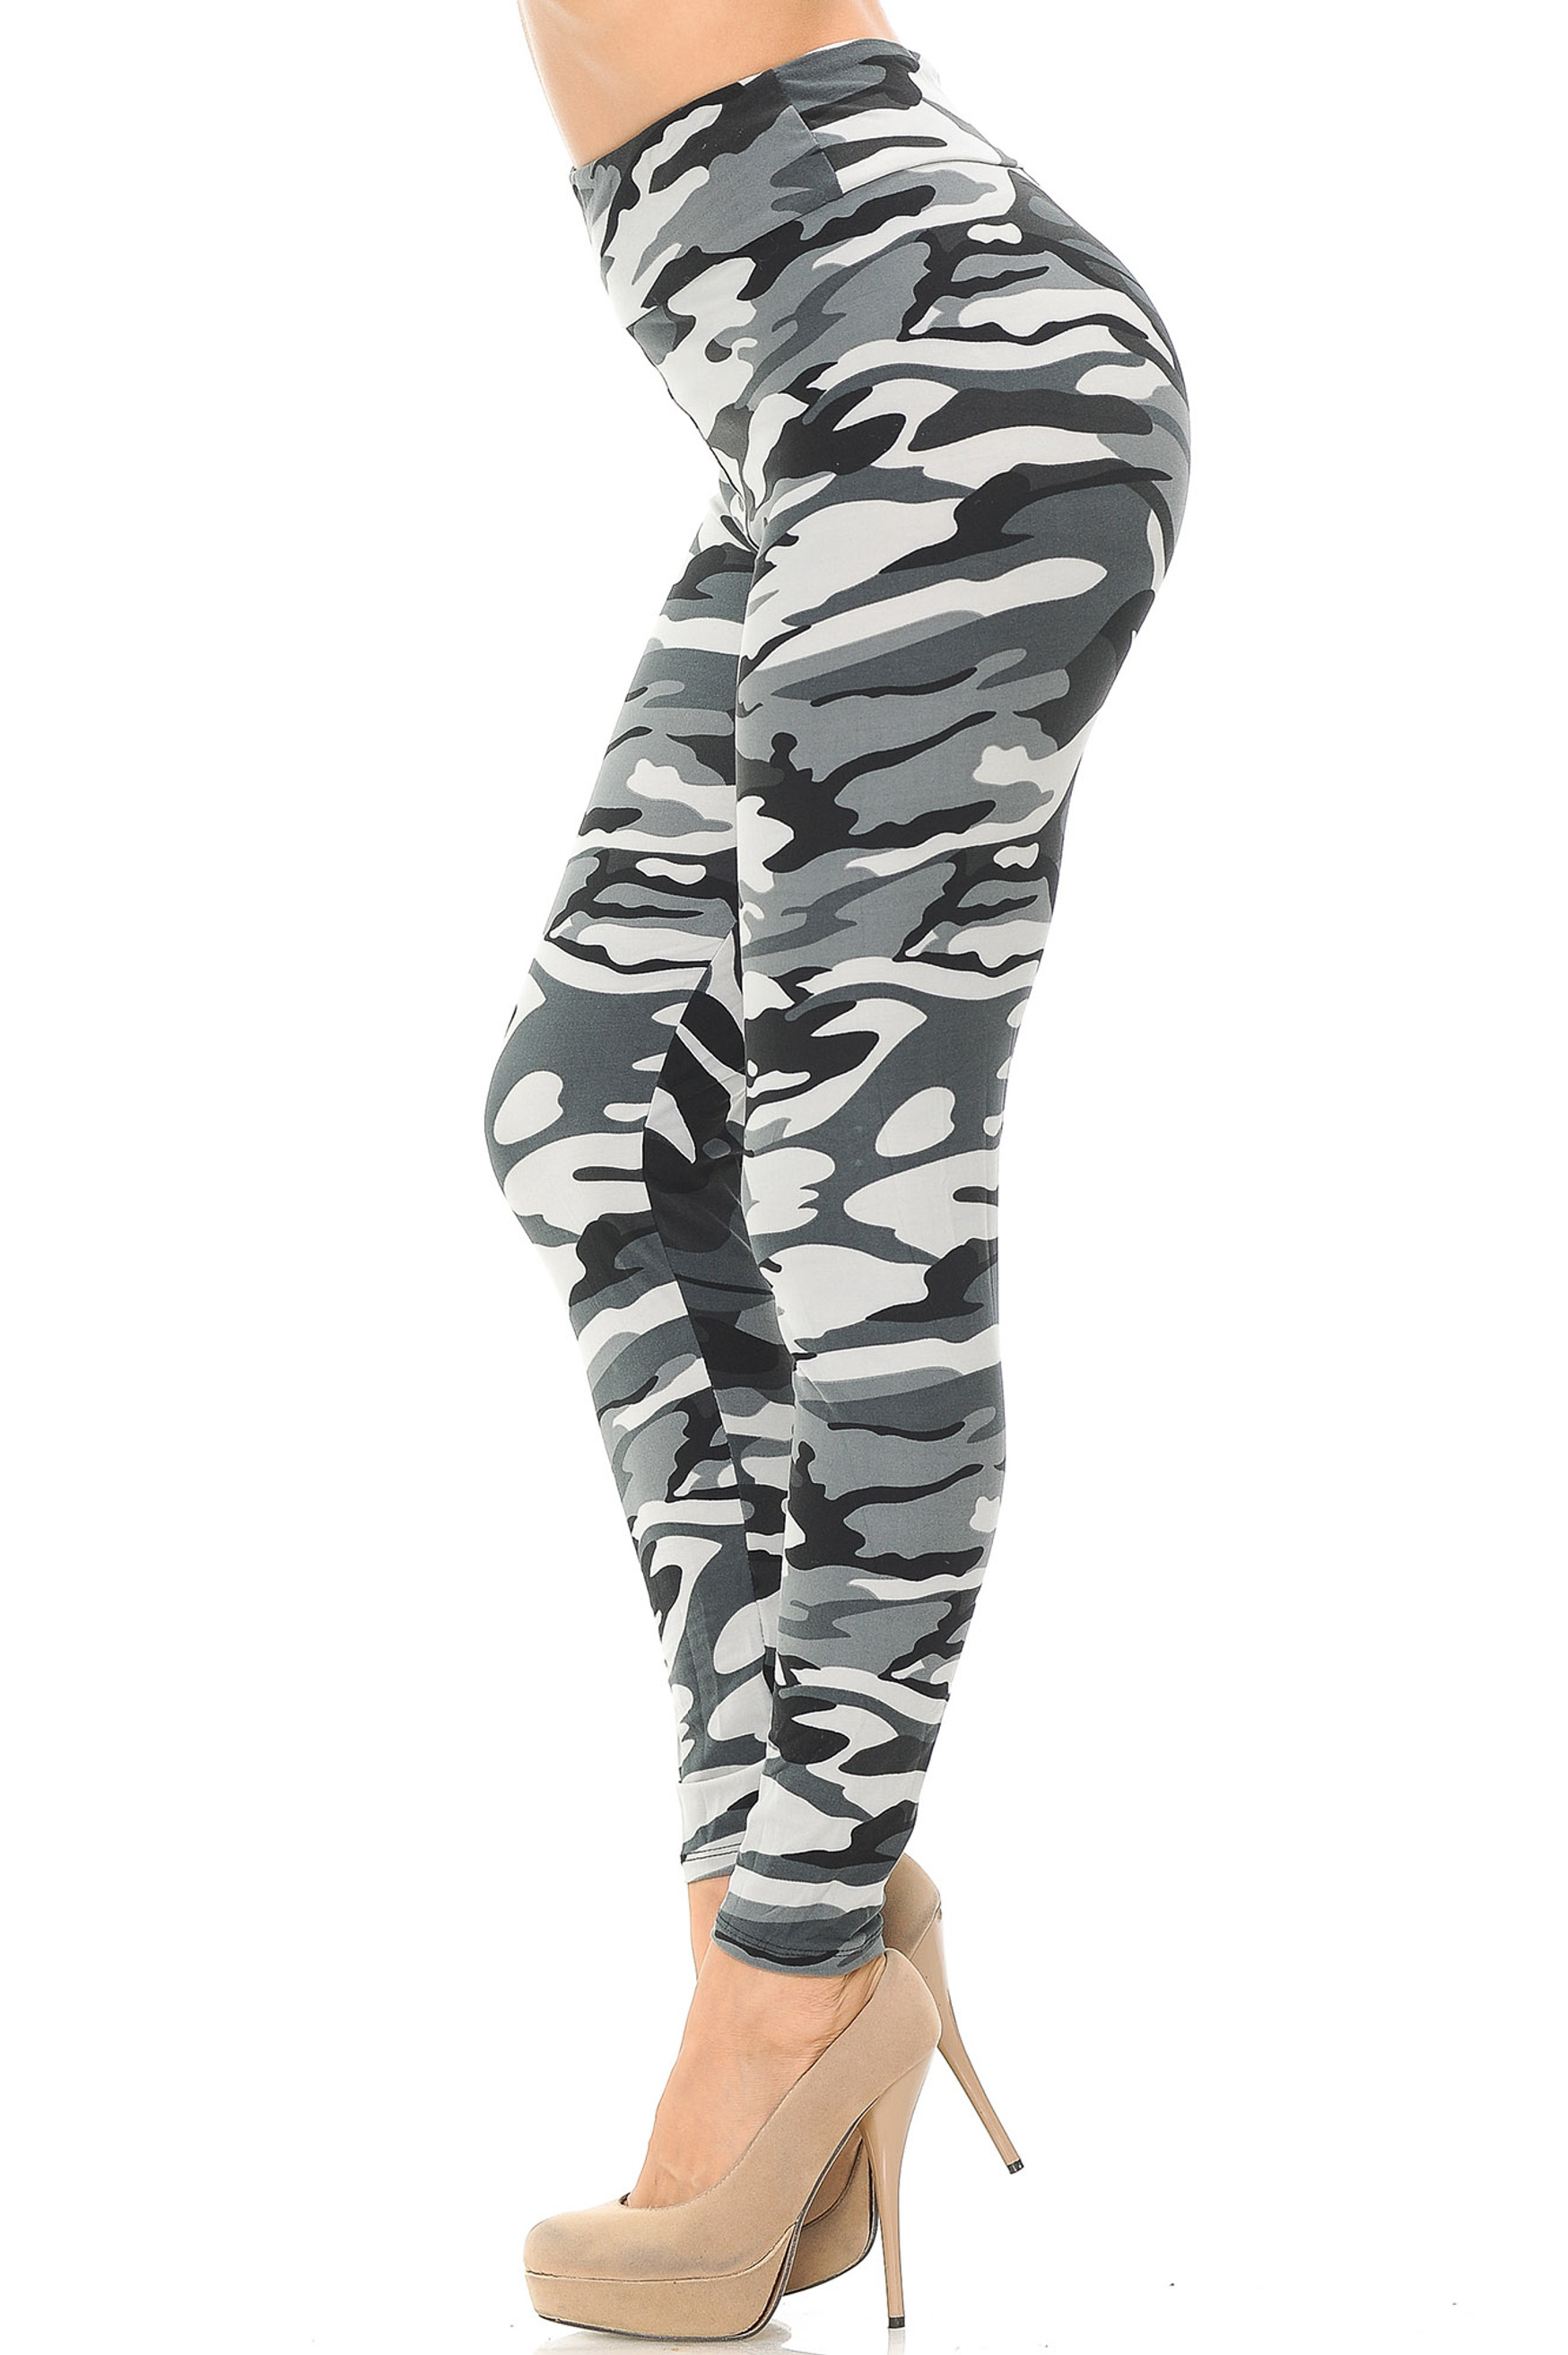 Brushed  Charcoal Camouflage High Waisted Leggings - EEVEE